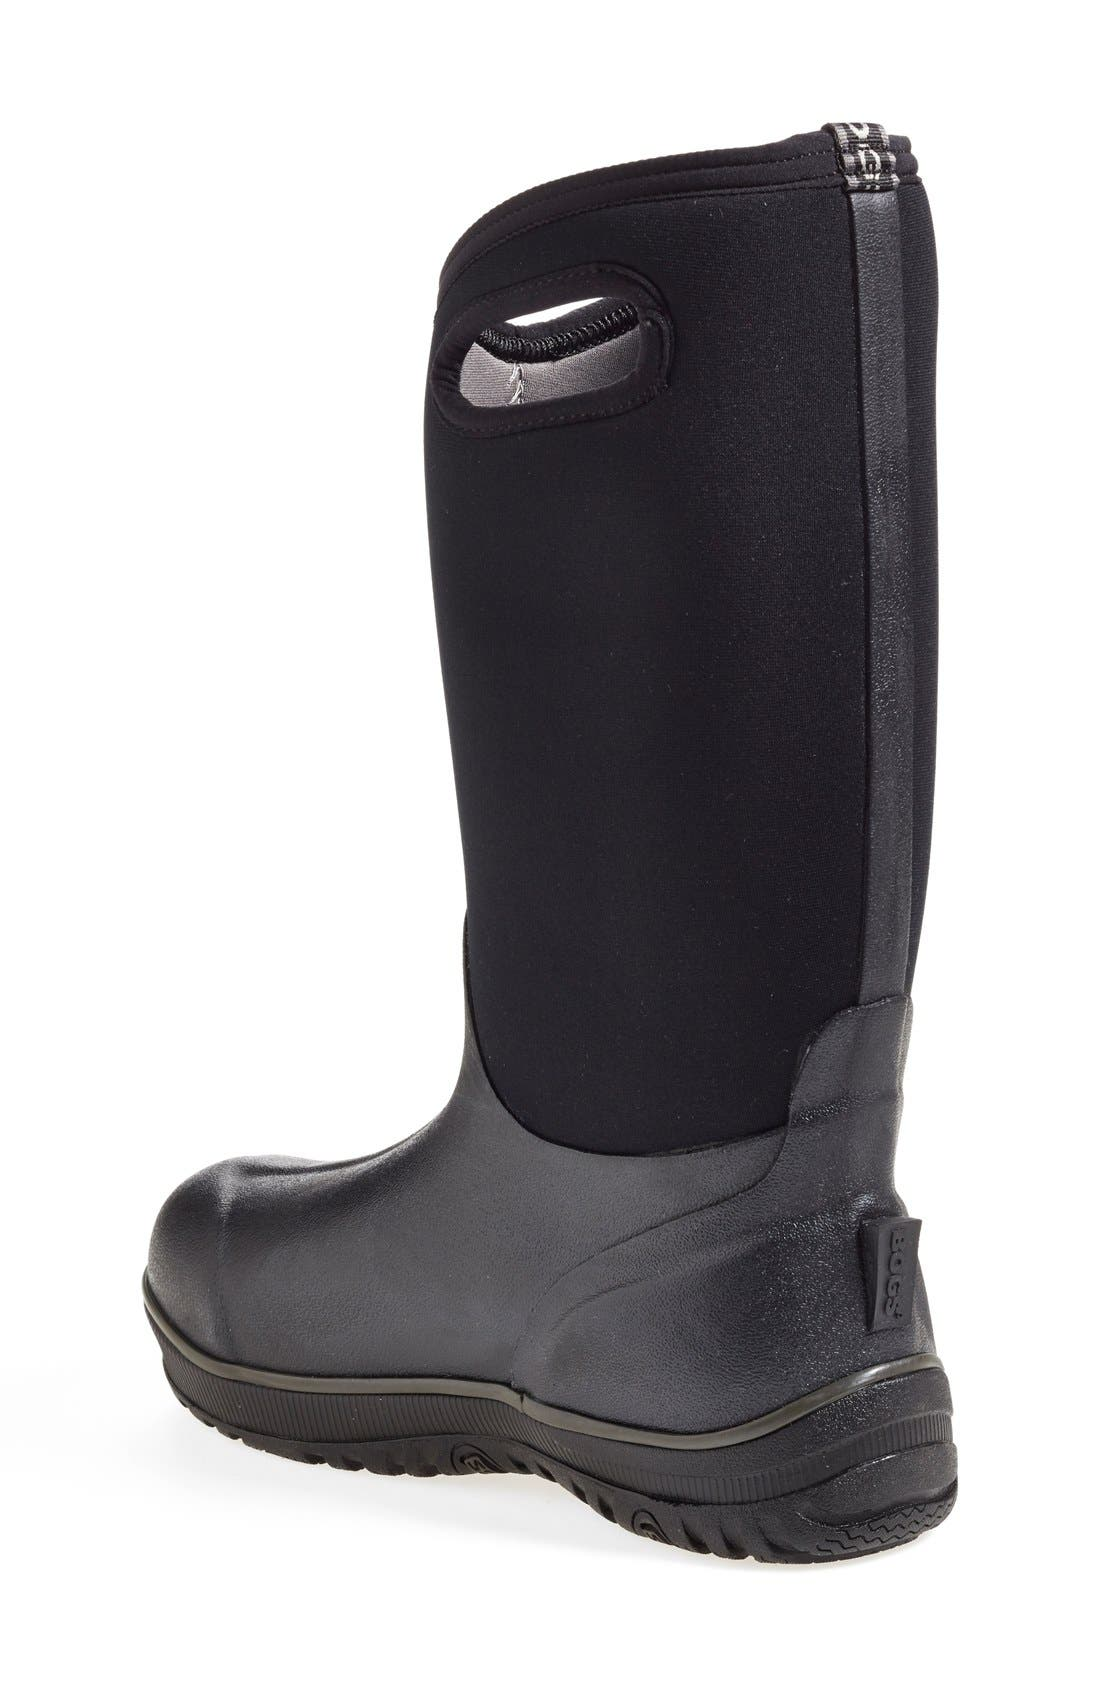 'Classic' Ultra High Waterproof Snow Boot with Cutout Handles,                             Alternate thumbnail 3, color,                             001